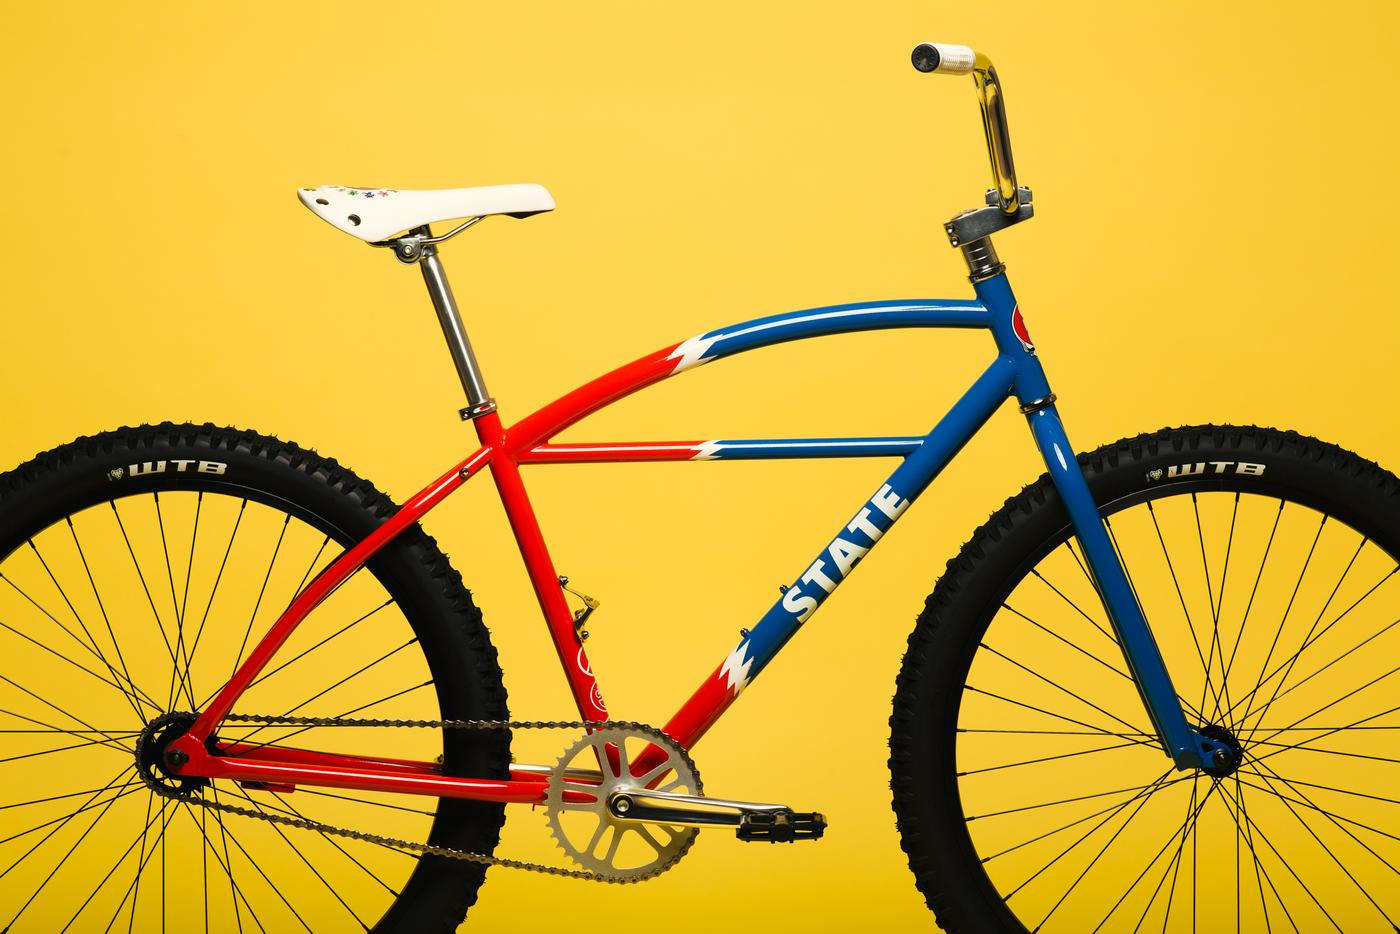 State Bicycle Co and the Grateful Dead Collaborate on Limited Edition Klunkers for 4.20